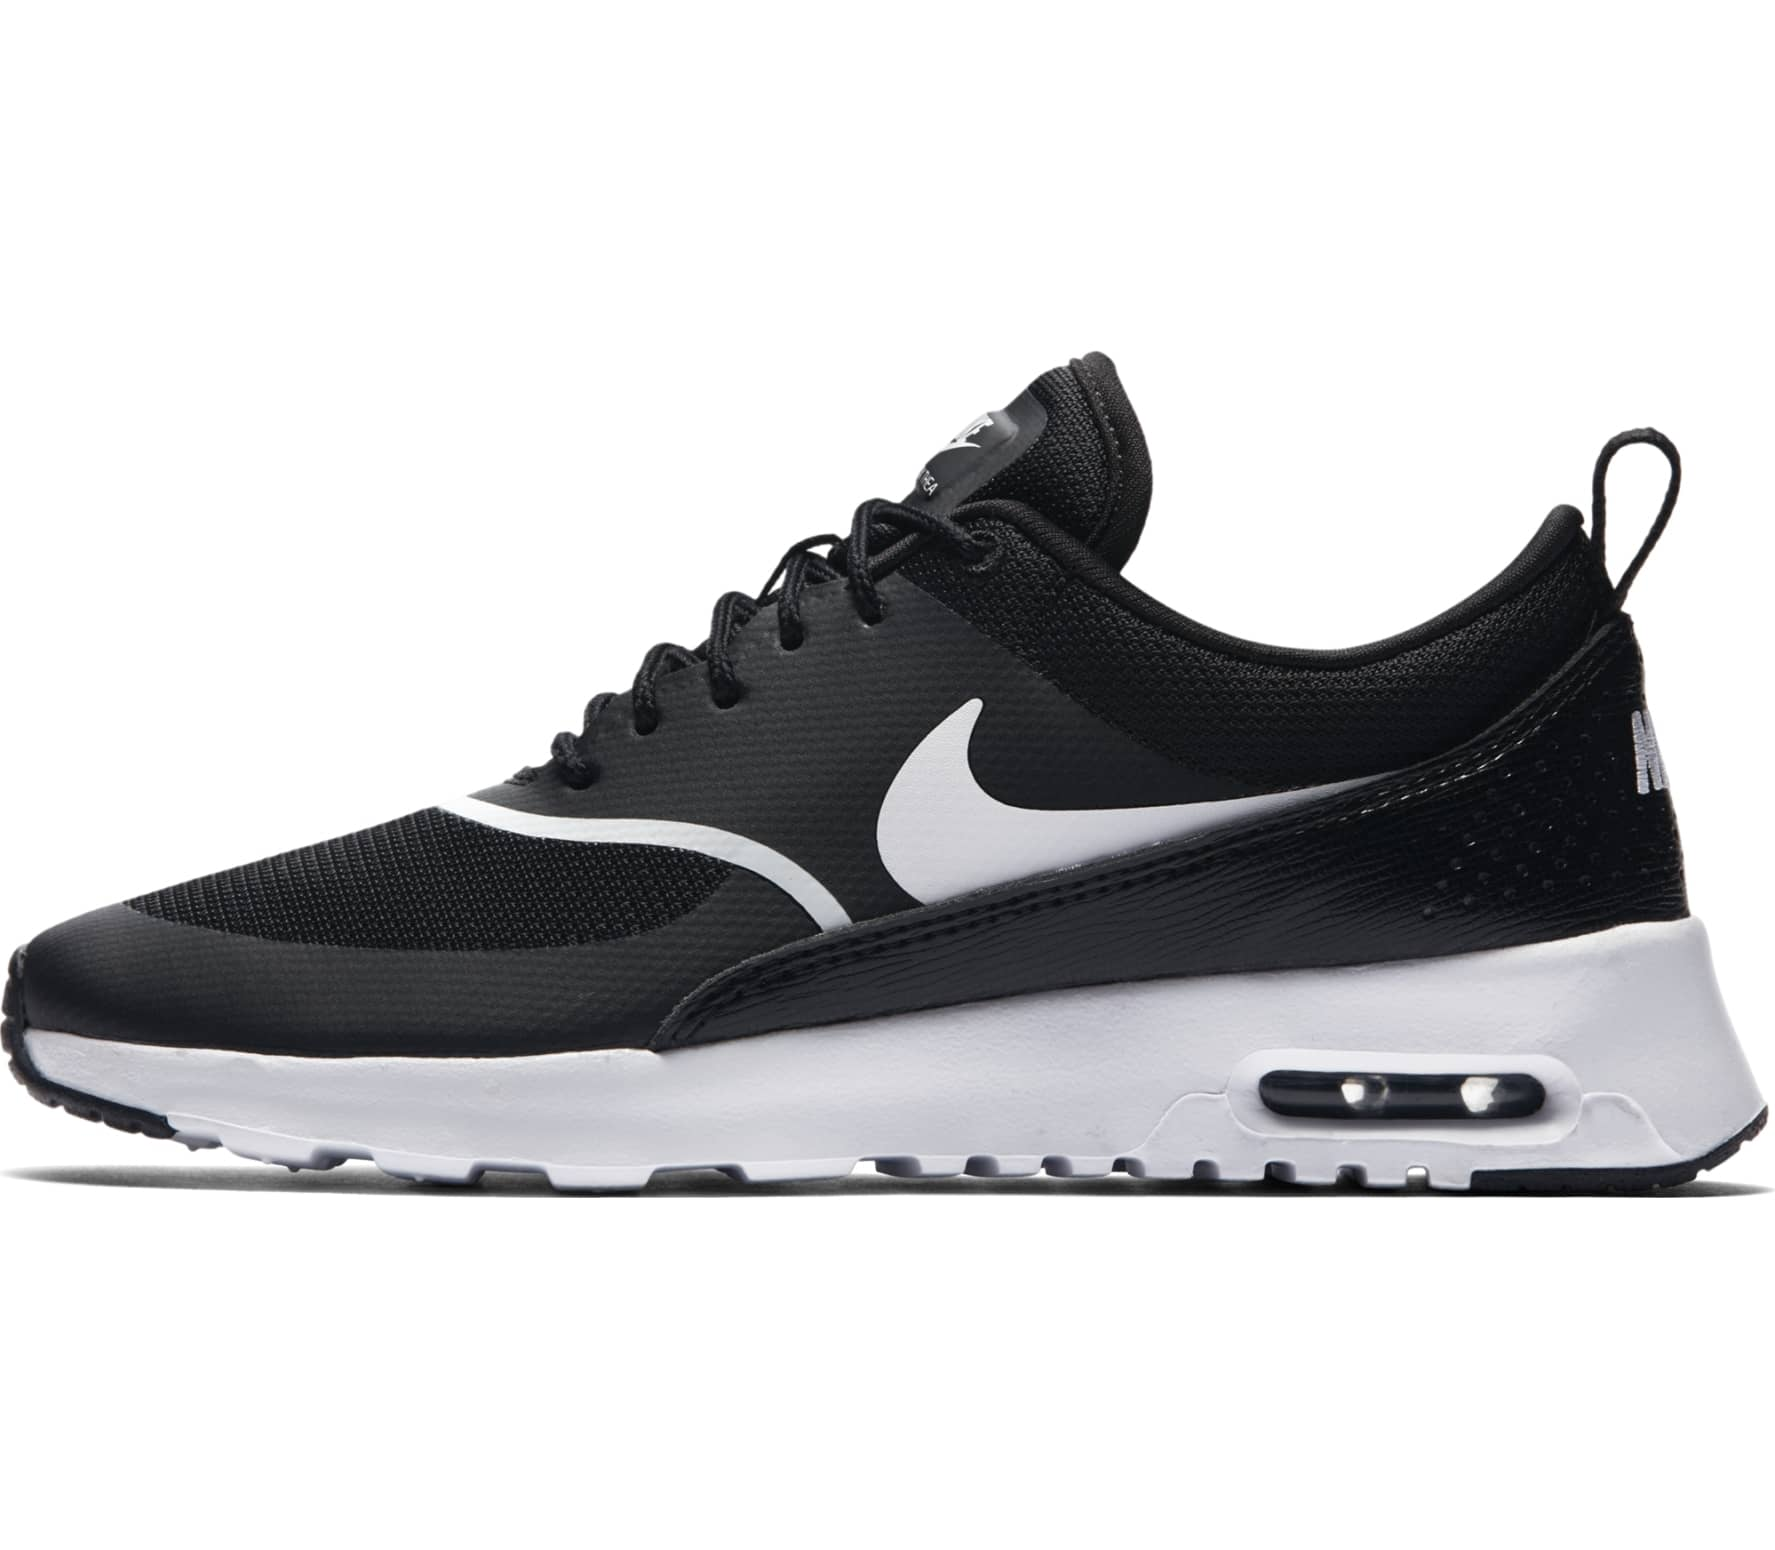 nike air max thea damen laufschuh schwarz wei im. Black Bedroom Furniture Sets. Home Design Ideas